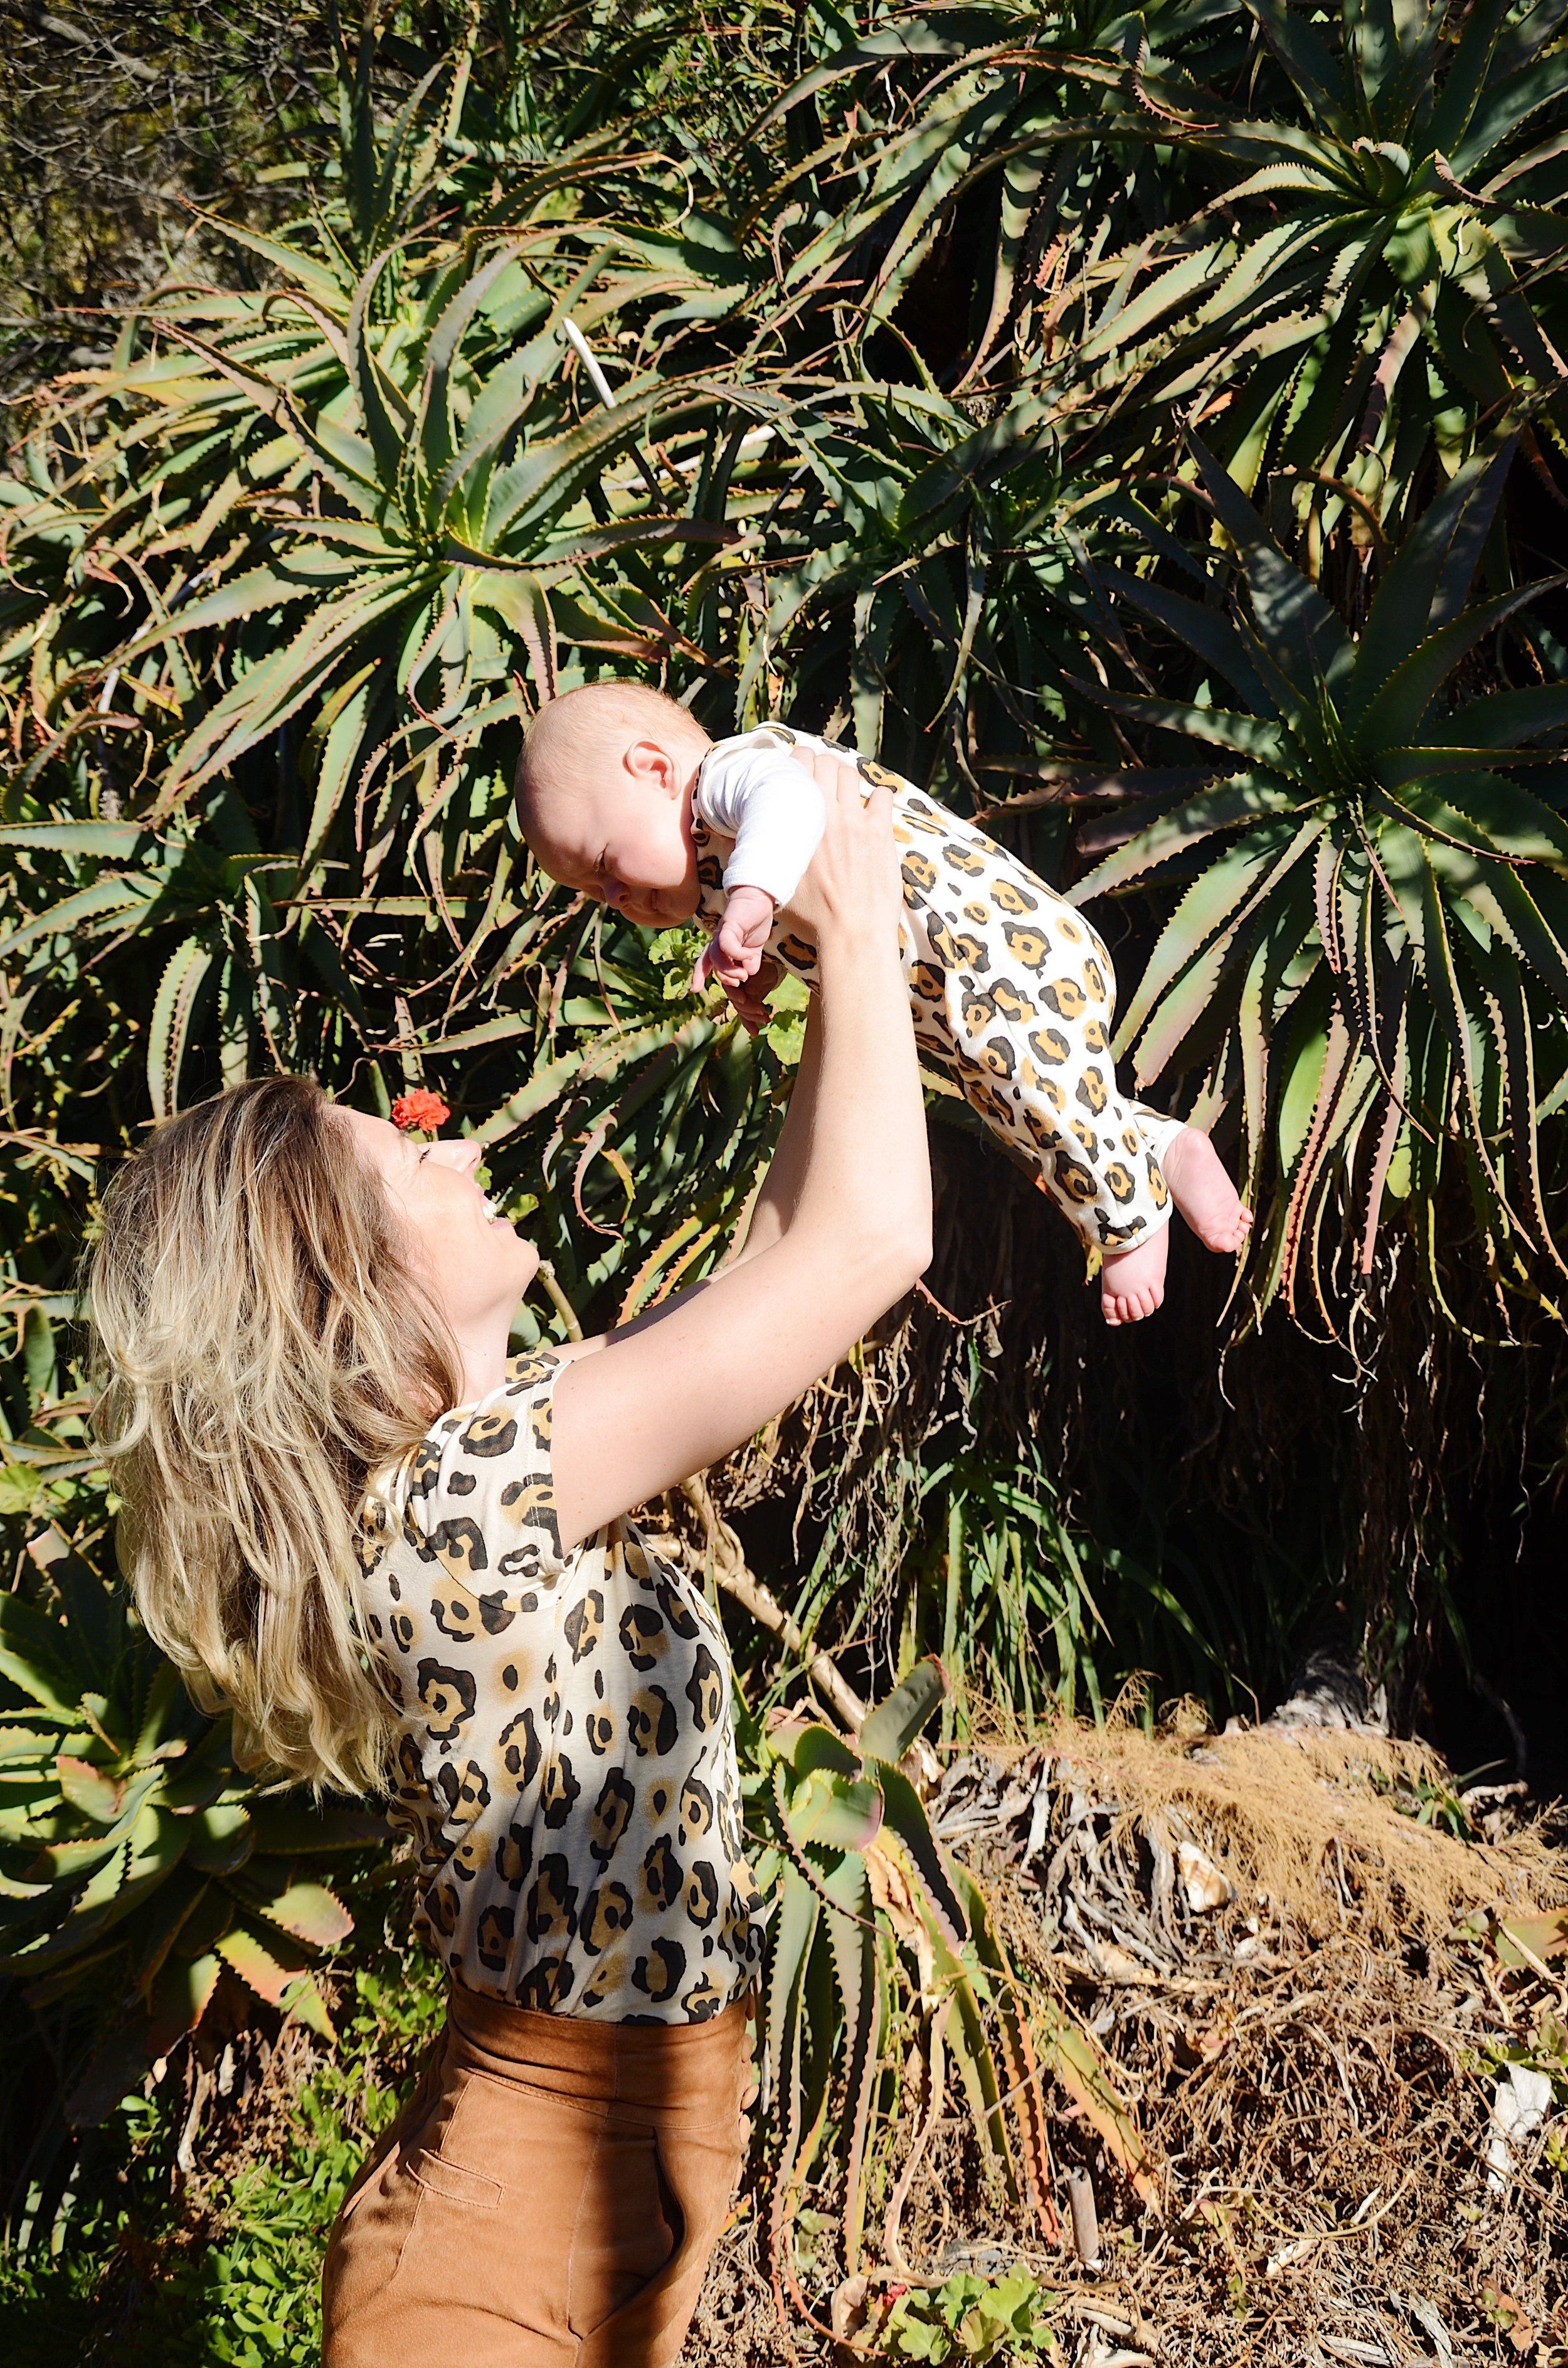 lifting Teddy above my head in front of cactus in matching leopard print